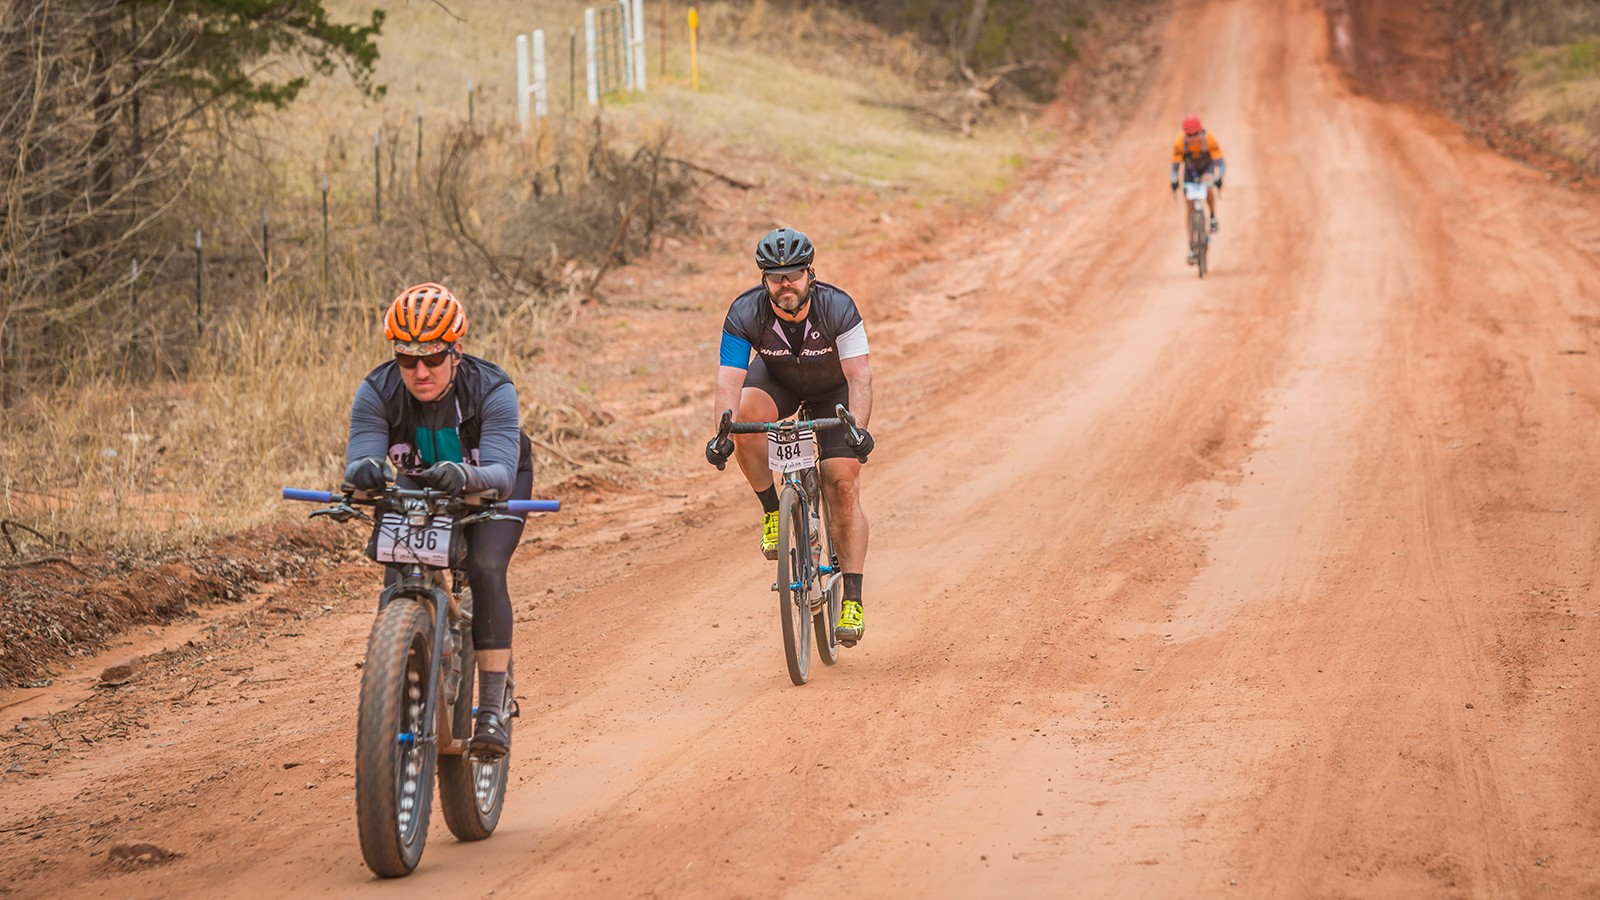 Run what ya brung: one of the best parts of gravel races is the wide variety of bikes on course